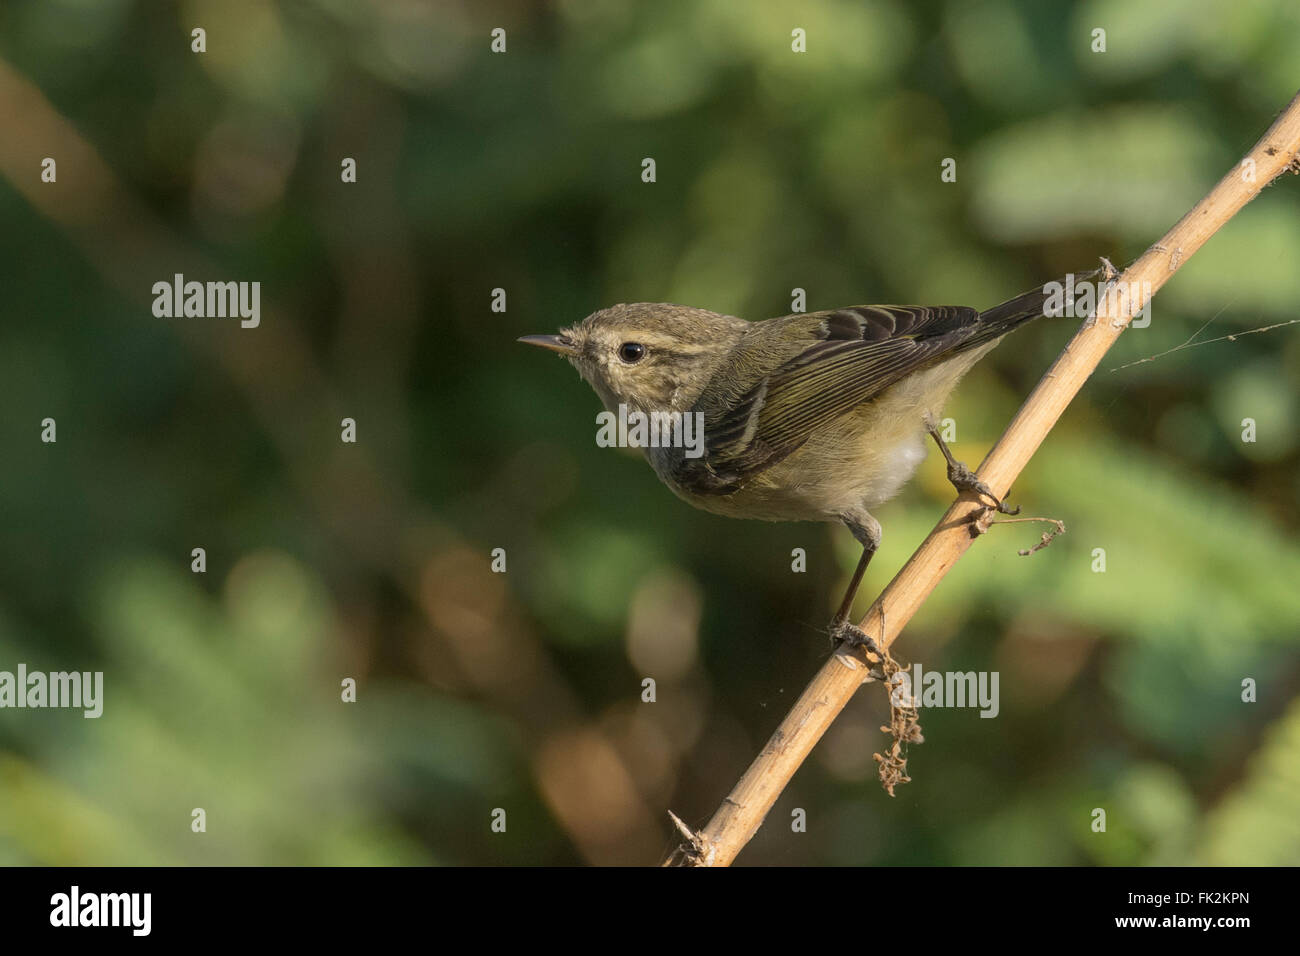 Hume's leaf warbler (Phylloscopus humei) at Thol Bird Sanctuary, Gujarat, India Stock Photo